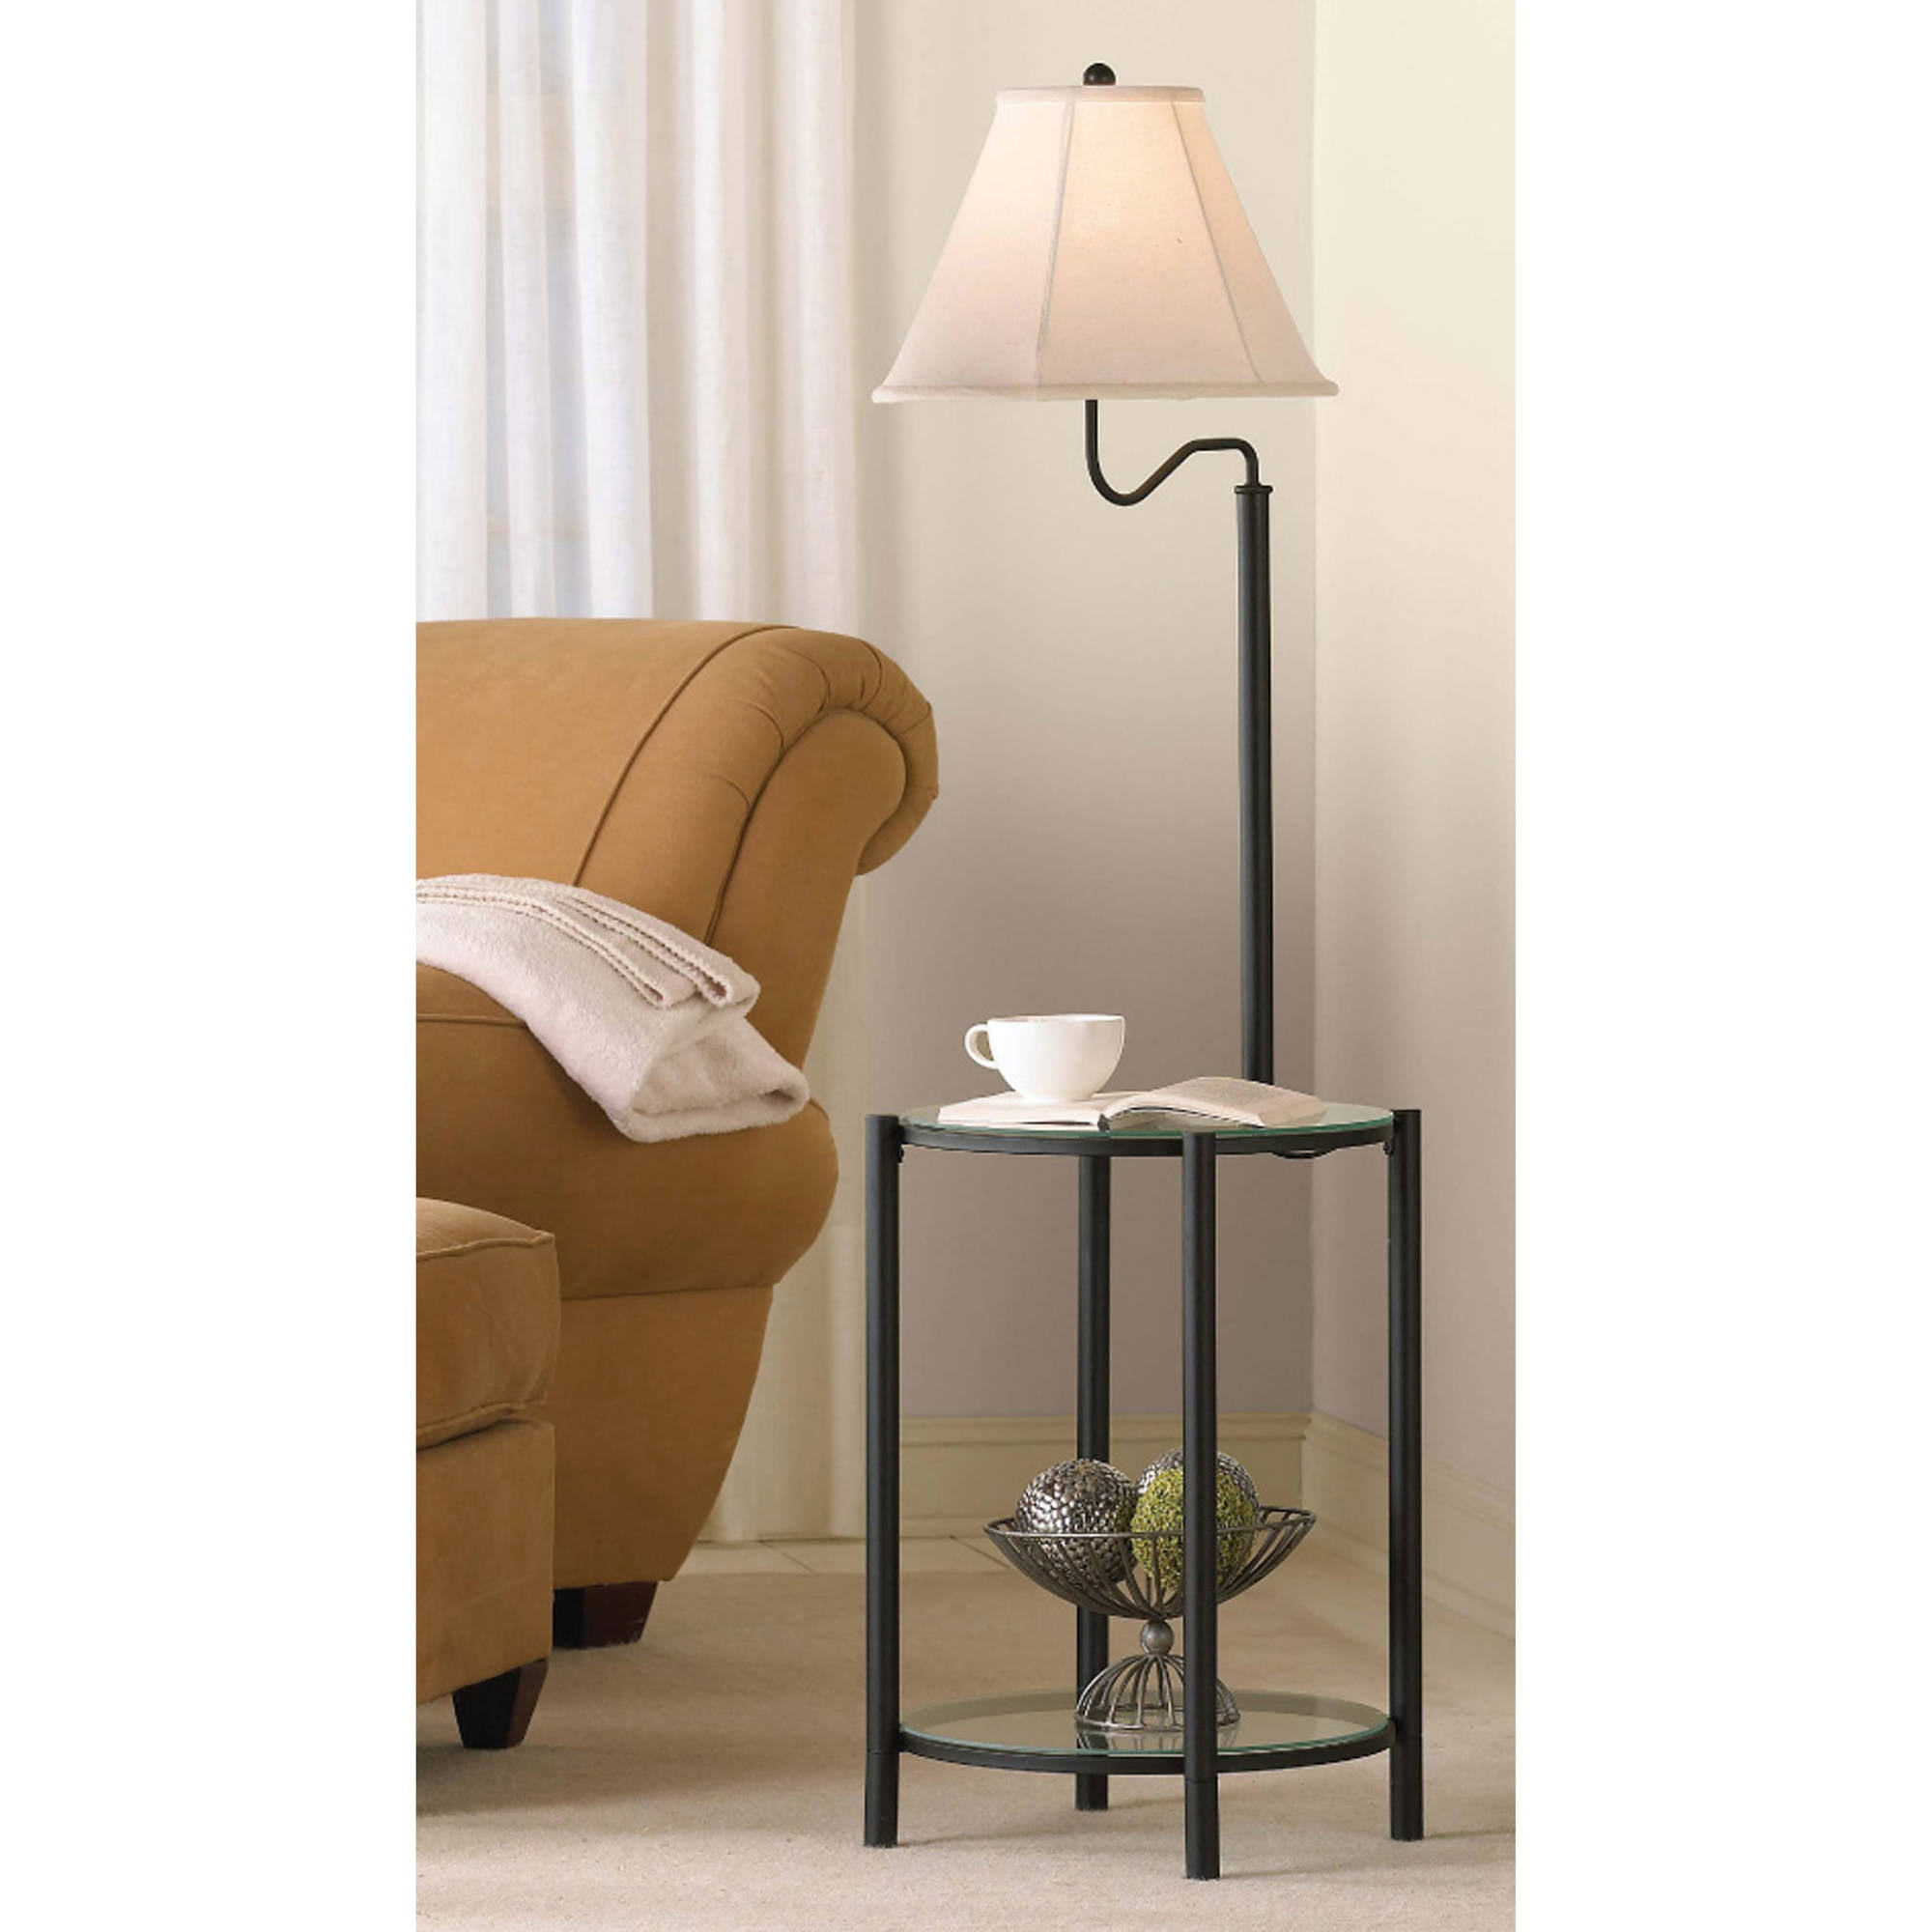 Floor lamp tables - Mainstays Glass End Table Floor Lamp Matte Black Cfl Bulb Included Walmart Com